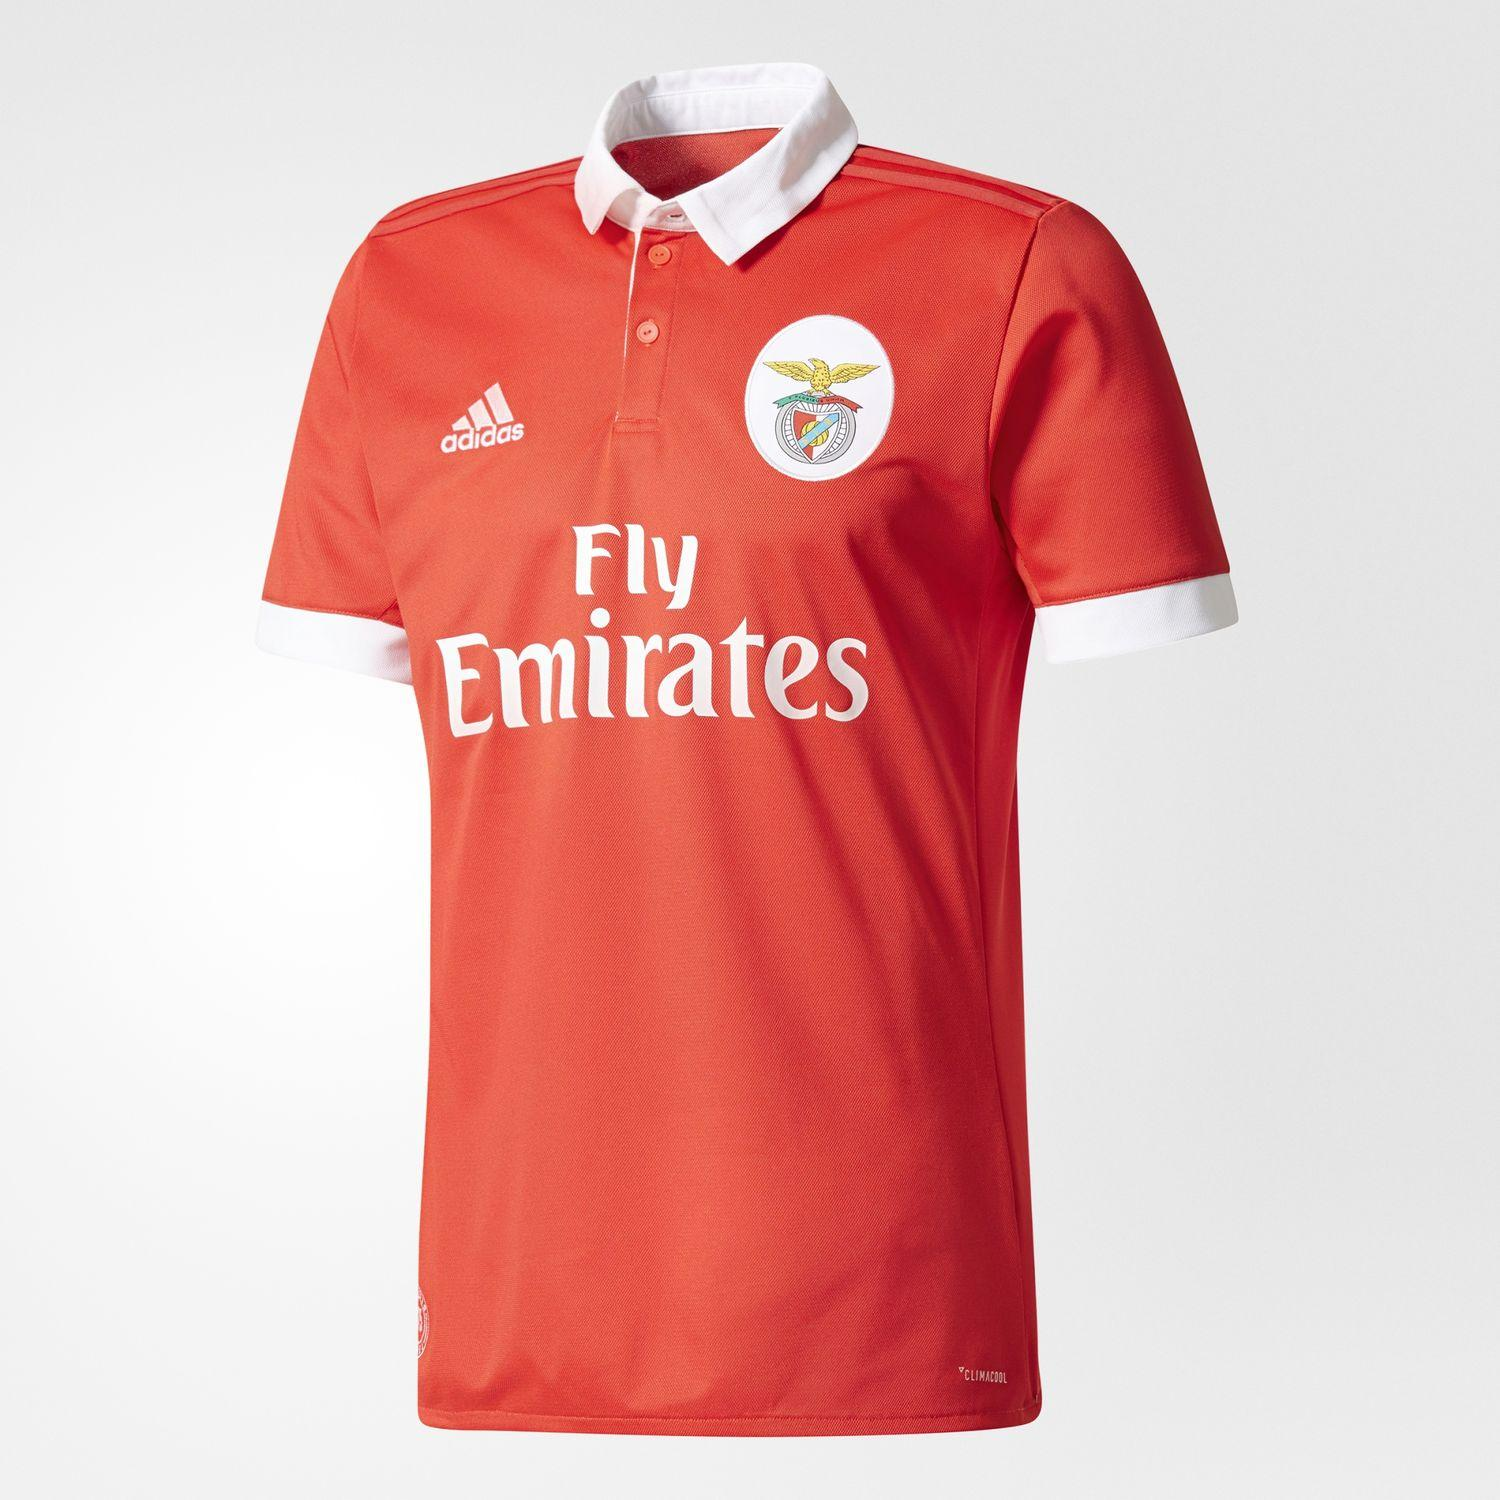 Adidas Shirt Home Benfica   17/18